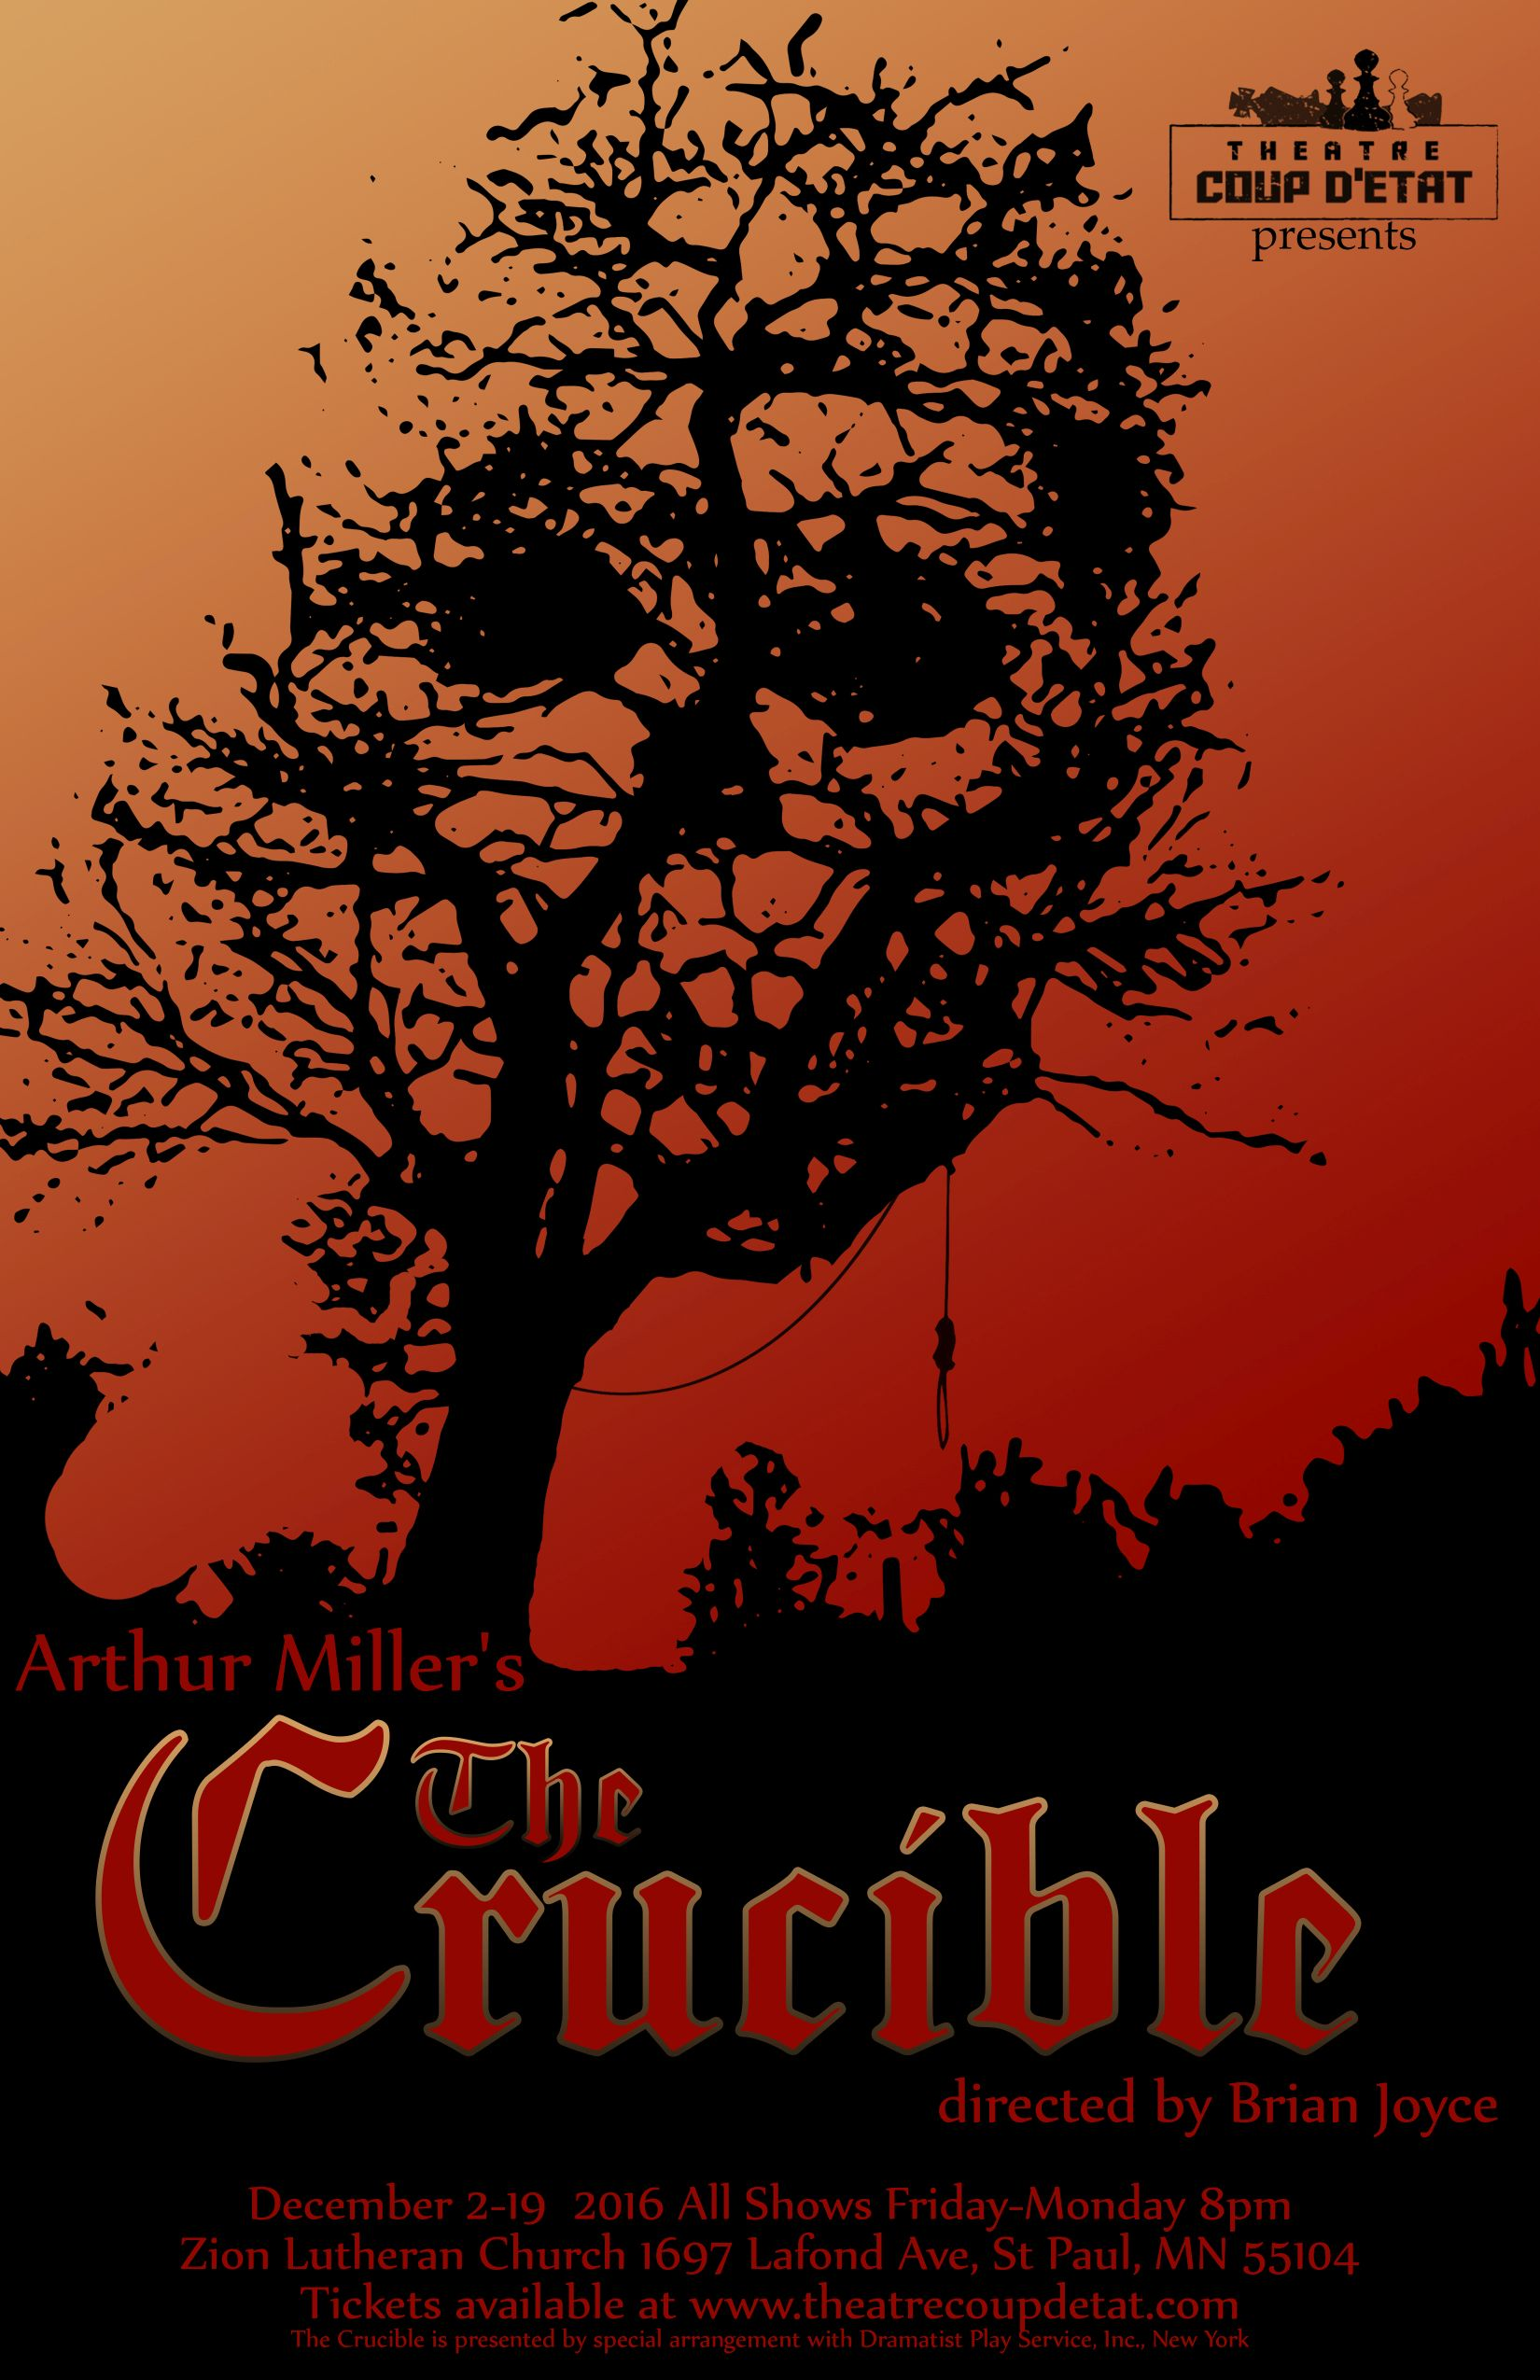 the chaos of salems witch trials in the crucible by arthur miller Arthur miller ostensibly wrote his classic drama the crucible about the salem witch trials of 1692, but he really wroteabout sen joseph mccarthy's hunt for communists.